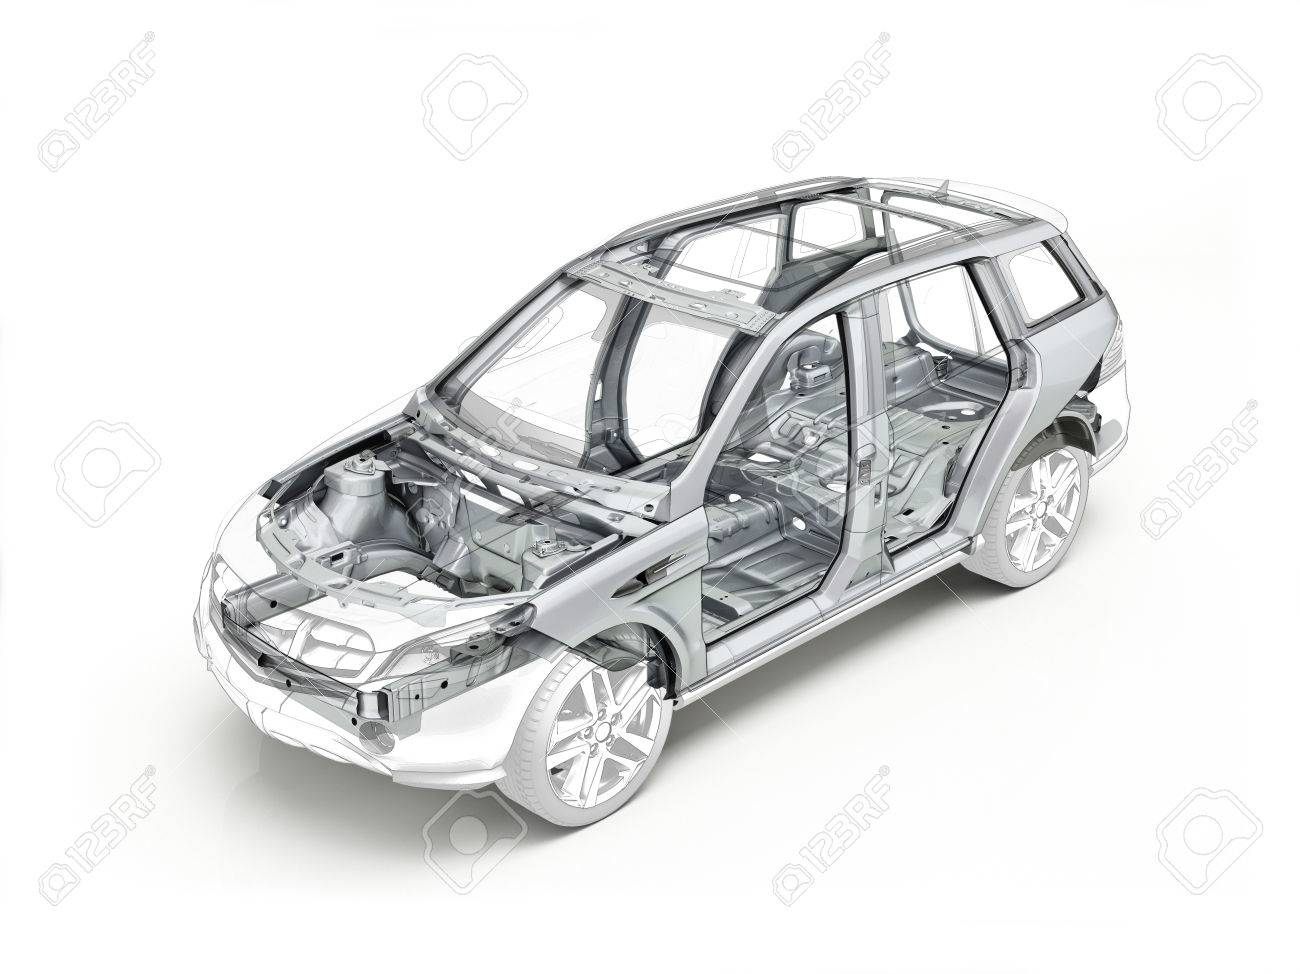 Suv Technical Drawing Showing The Car Chassis Realistic In Ghost ...